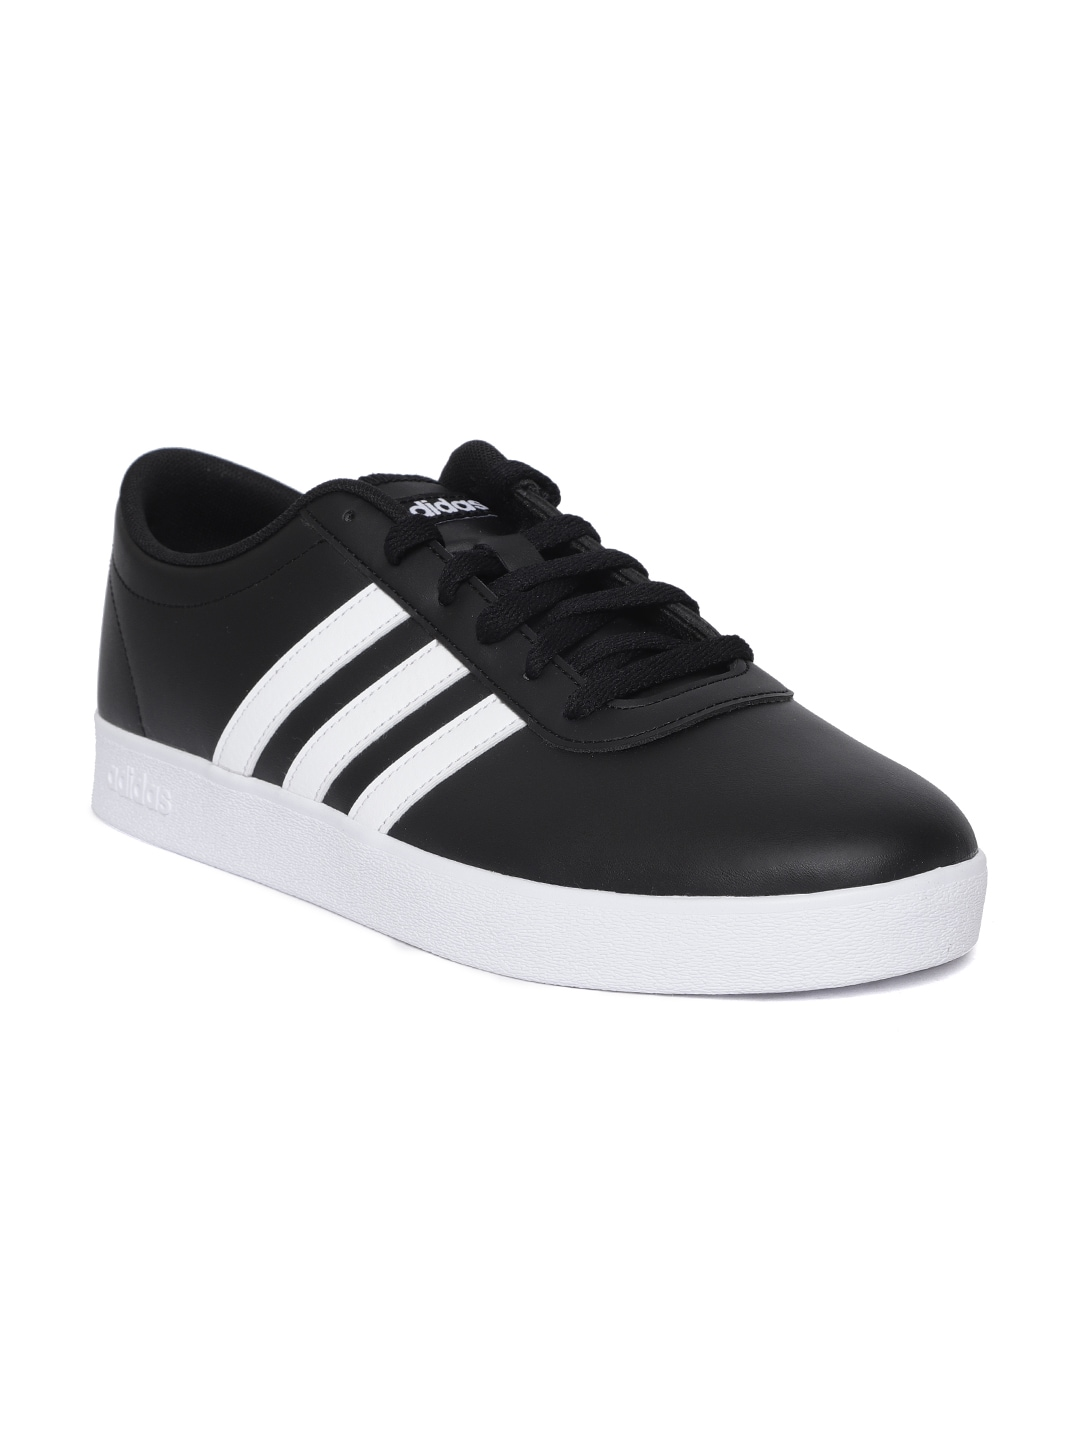 26937f0f580ee adidas - Exclusive adidas Online Store in India at Myntra